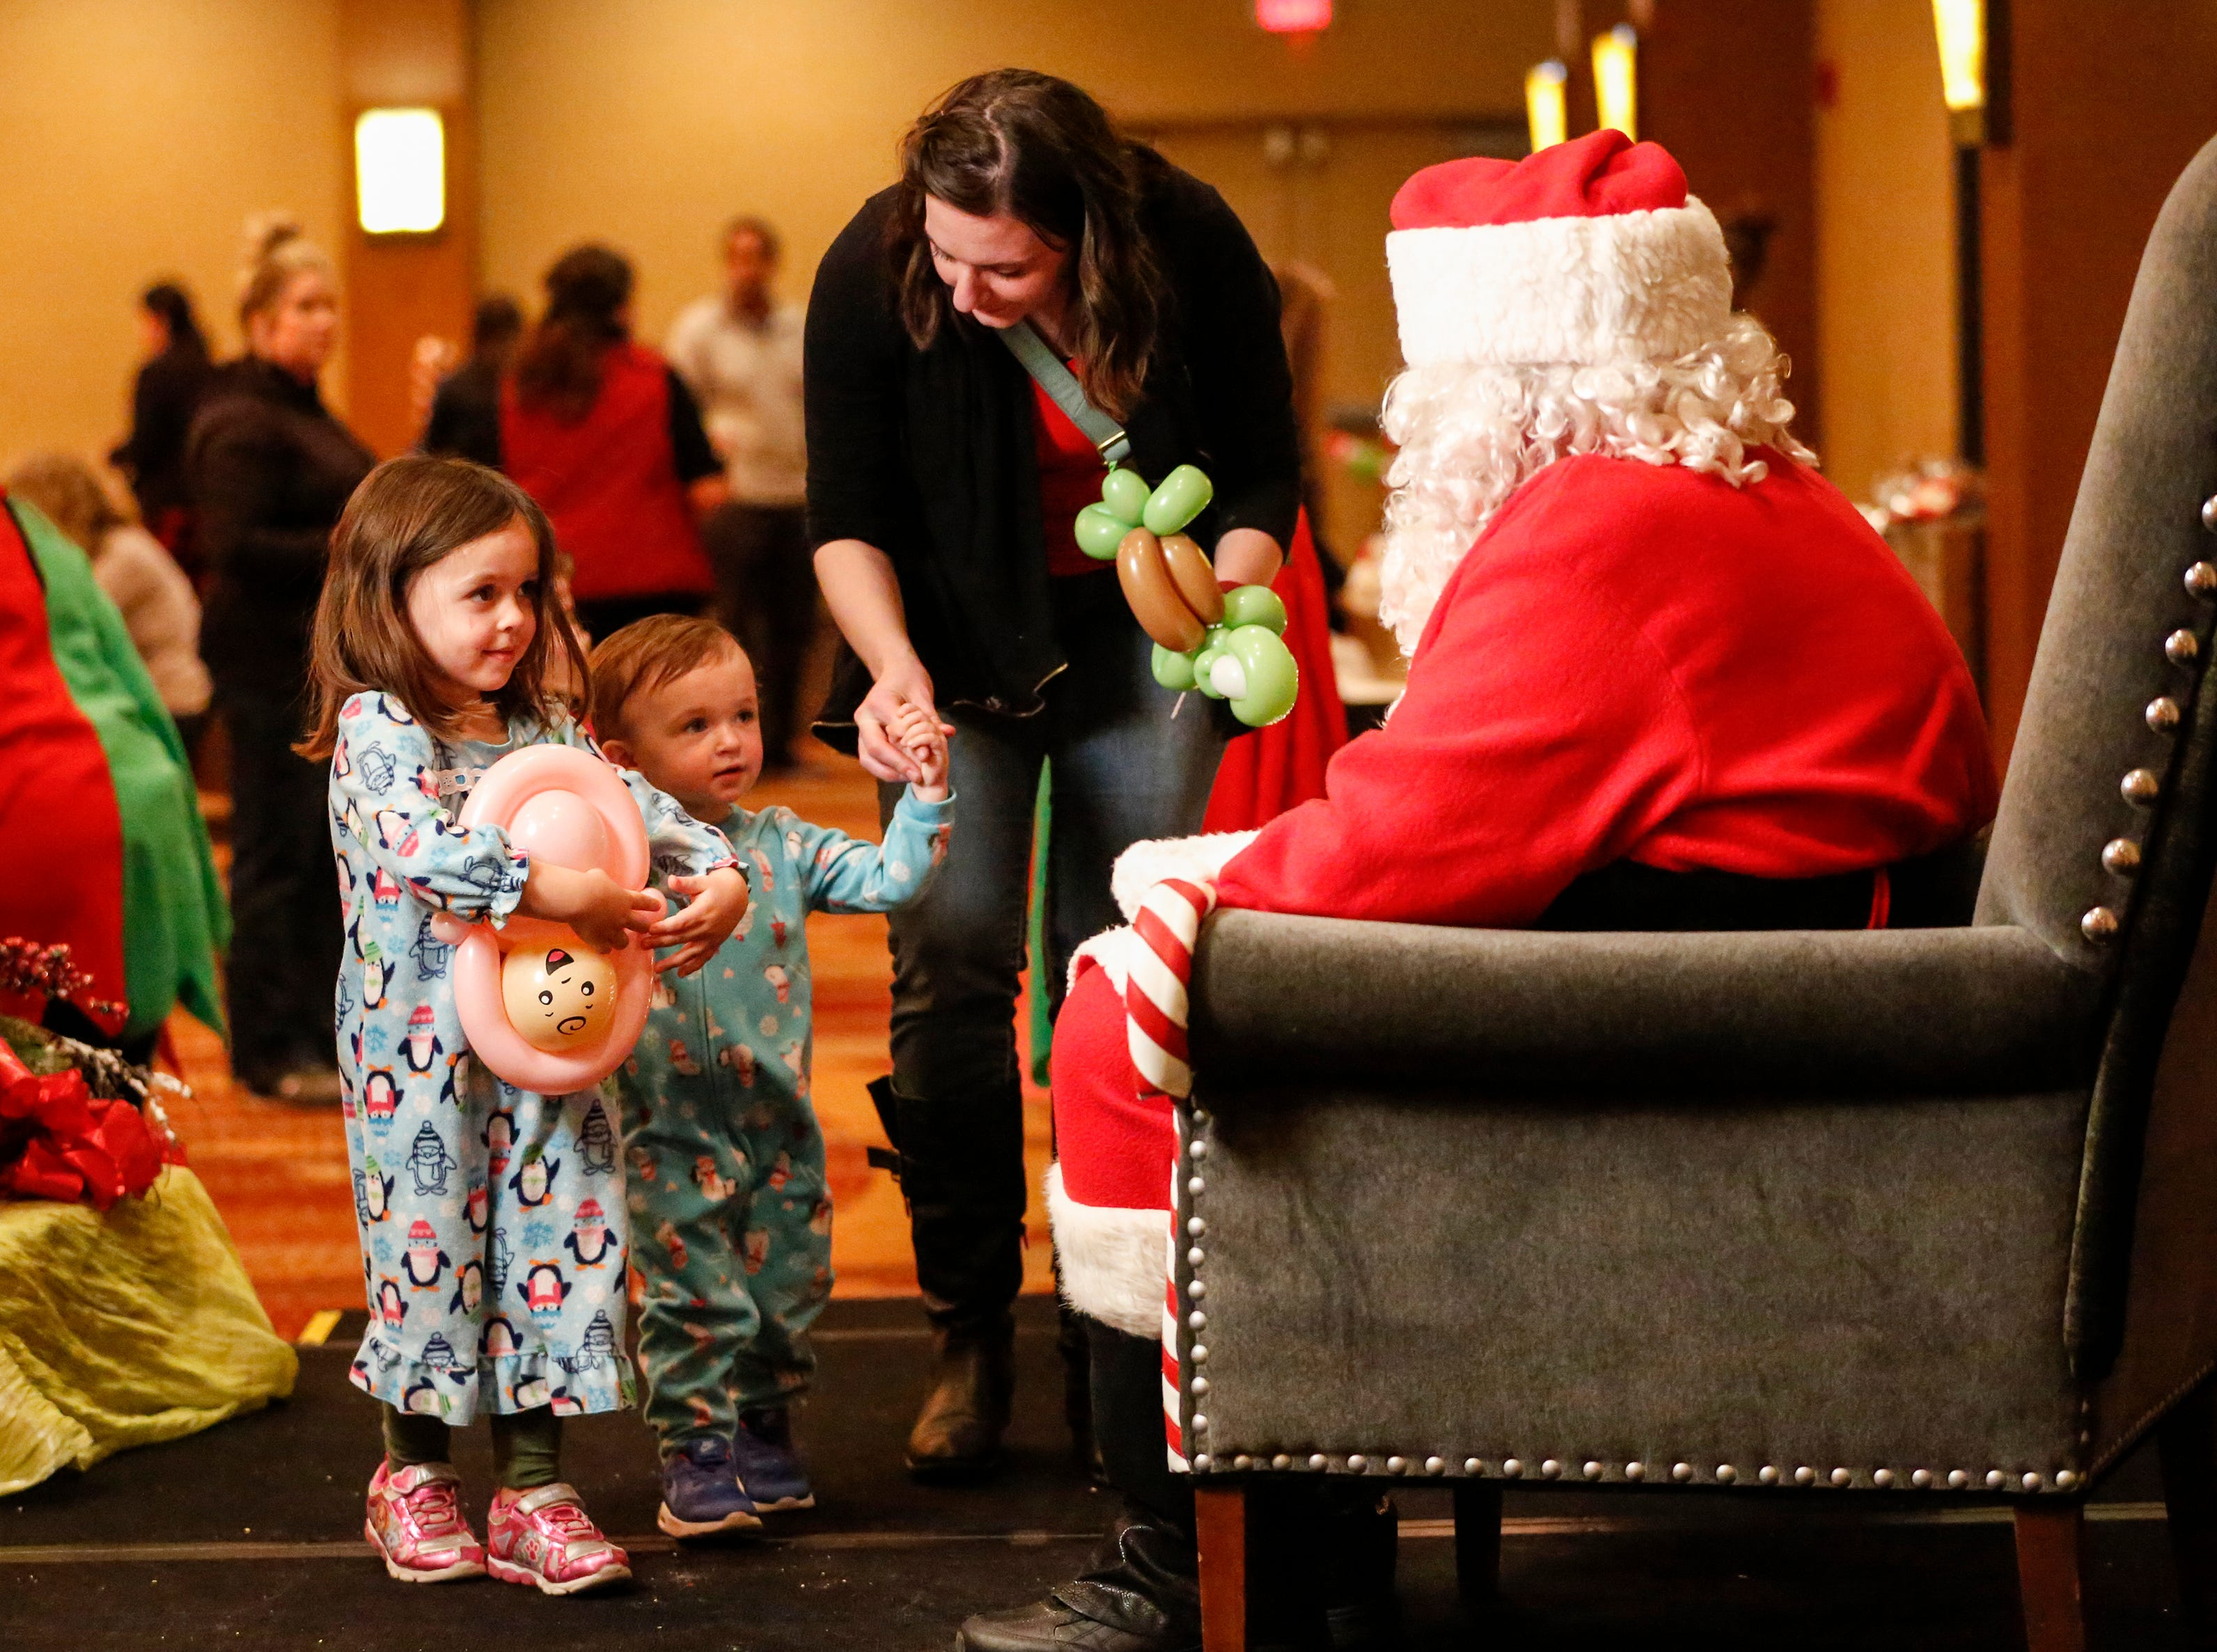 Erin Dach, of Jefferson, takes her children Harper, 4,  and Hattie, 2, to meet Santa at Santa's North Pole at the Holiday Inn Saturday, December 8, 2018, in Manitowoc, Wis. Joshua Clark/USA TODAY NETWORK-Wisconsin